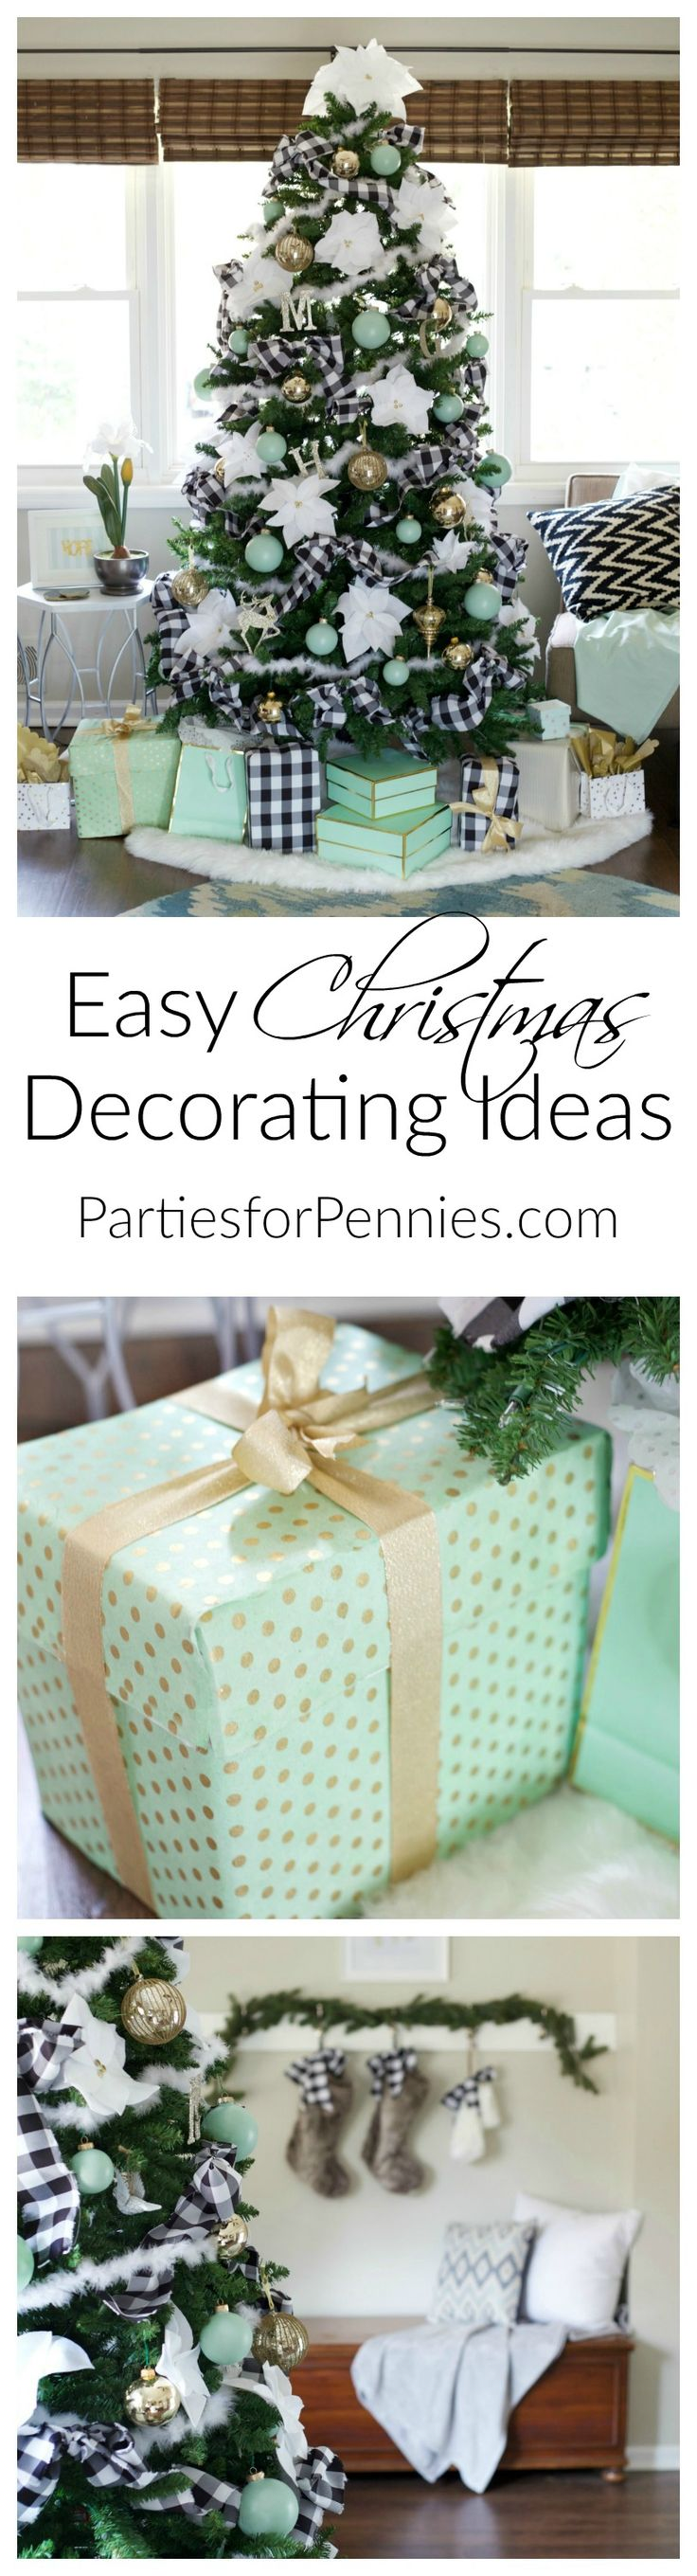 Easy Christmas Decorating Ideas By Partiesforpenniescom - Budget Friendly - Mint